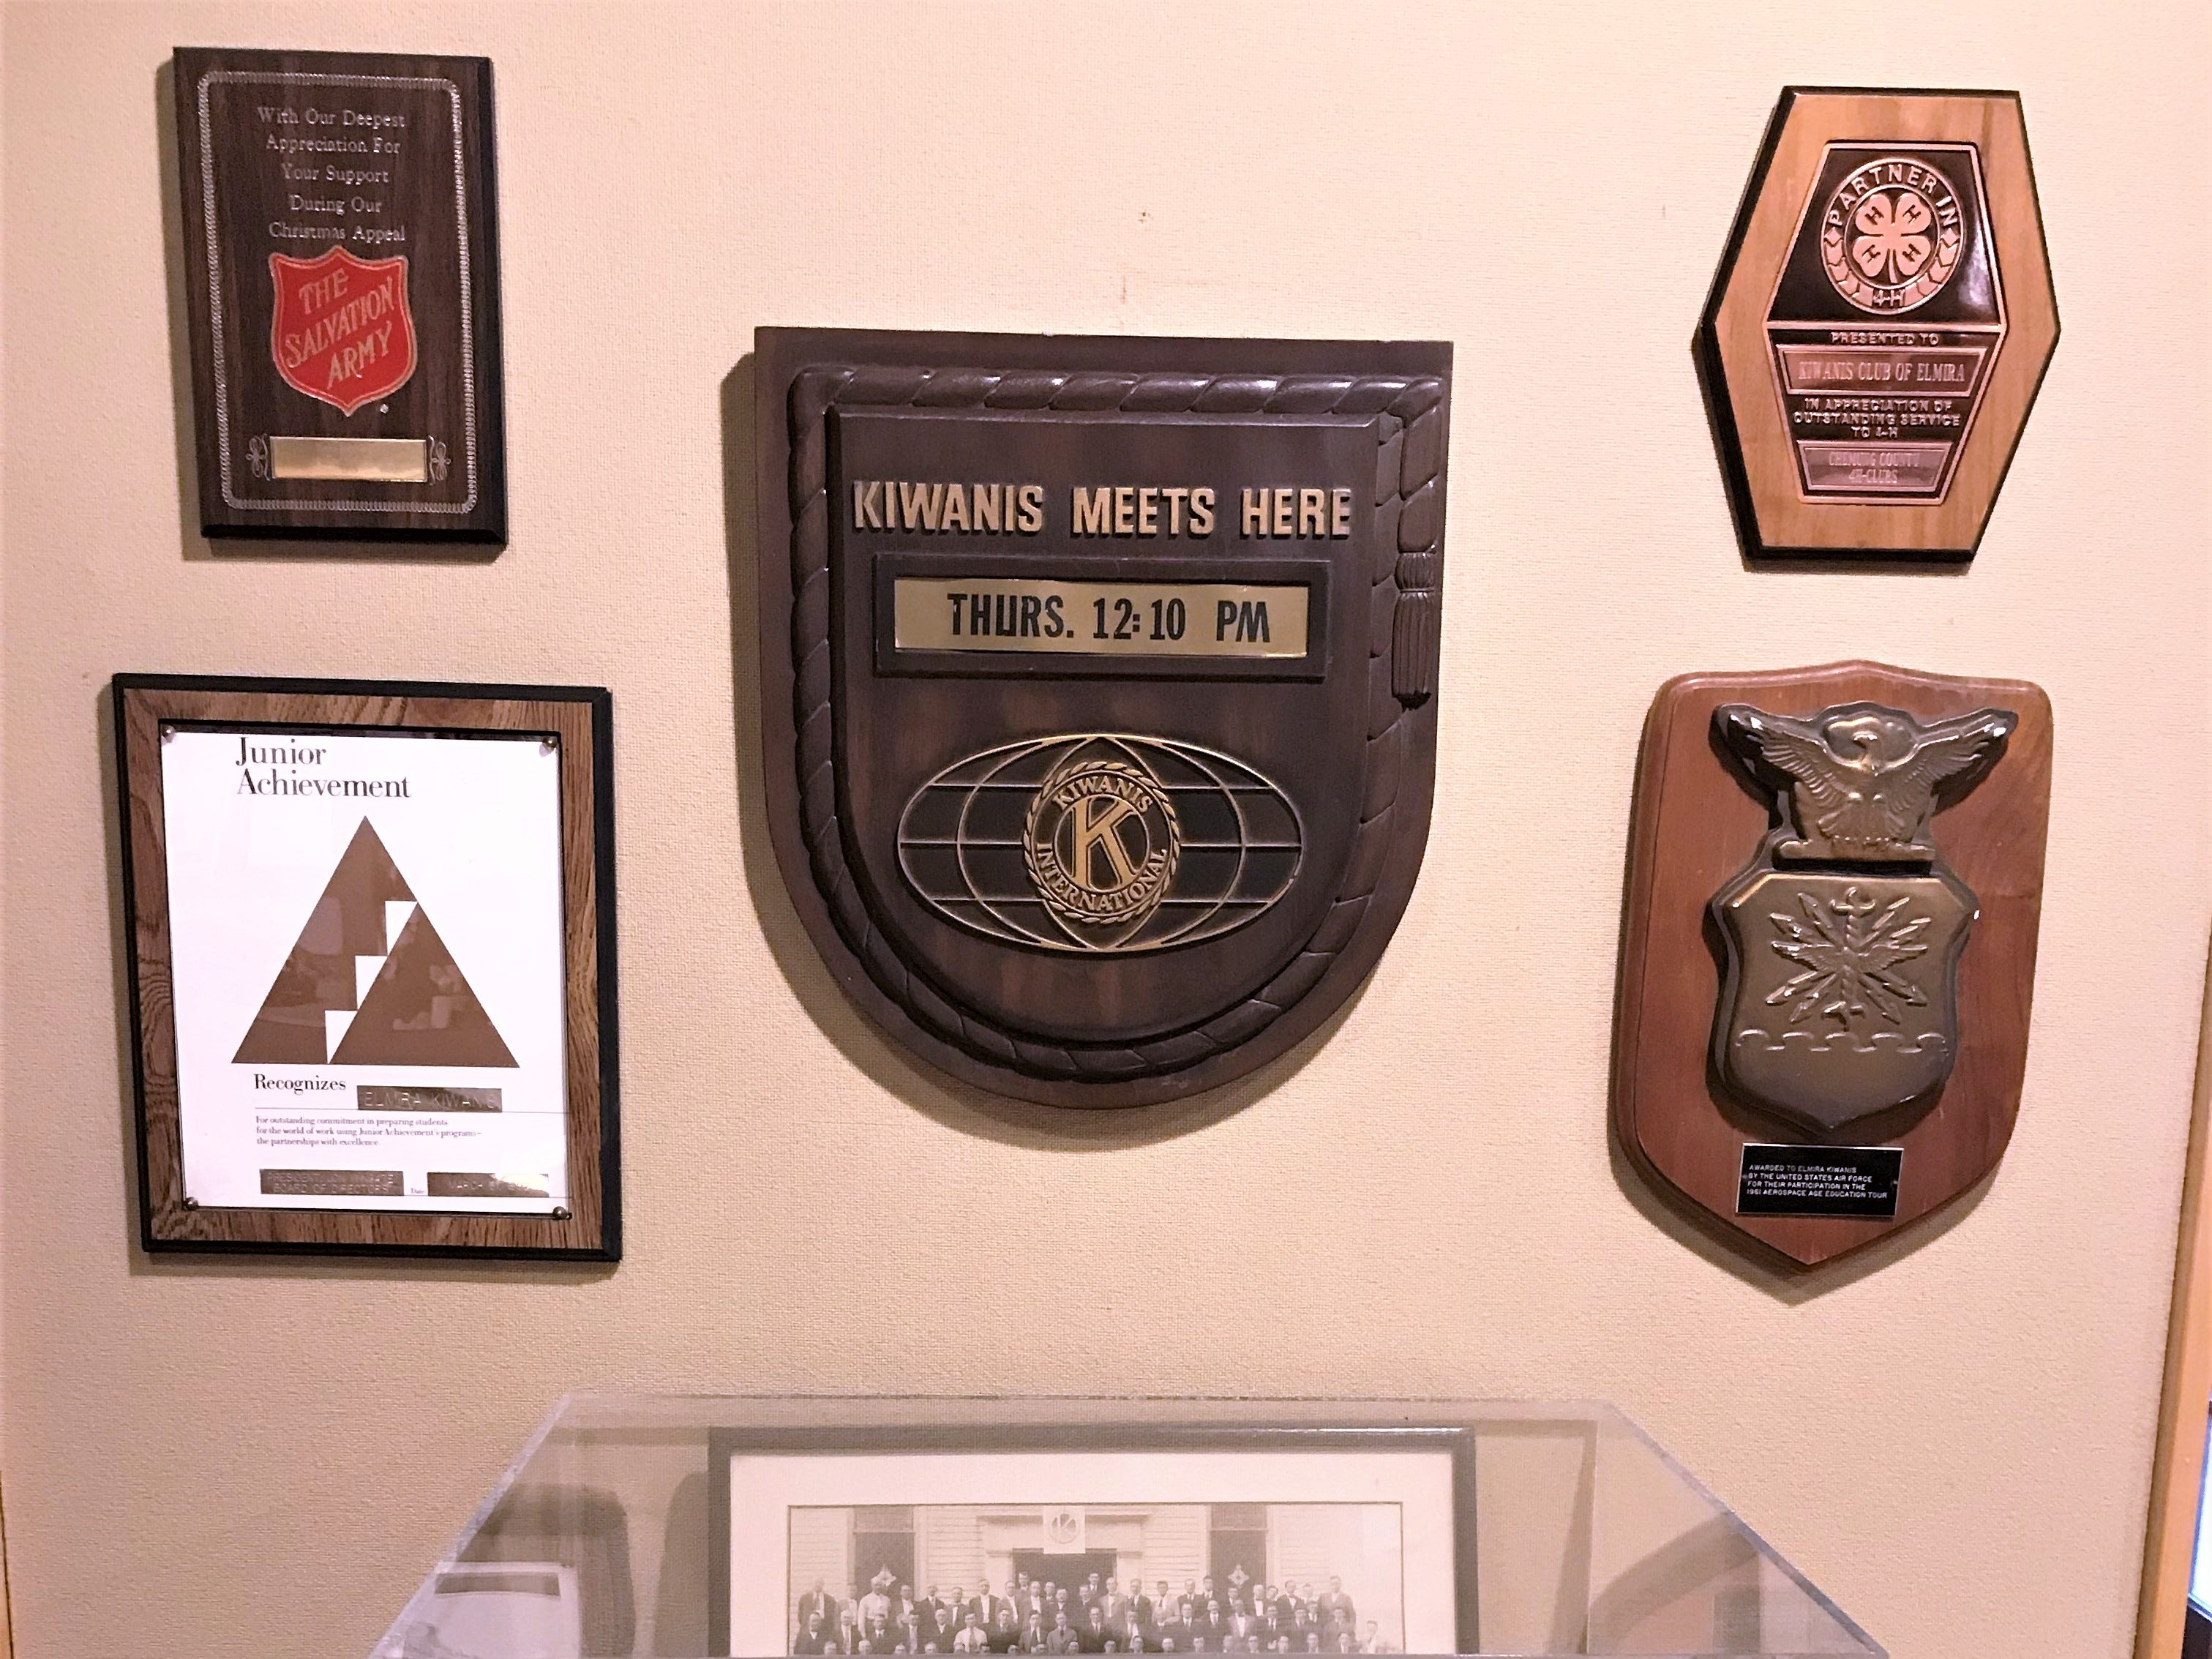 The Elmira Kiwanis Club has an exhibit of photos and other items on display at the Chemung Valley History Museum to celebrate its centennial.